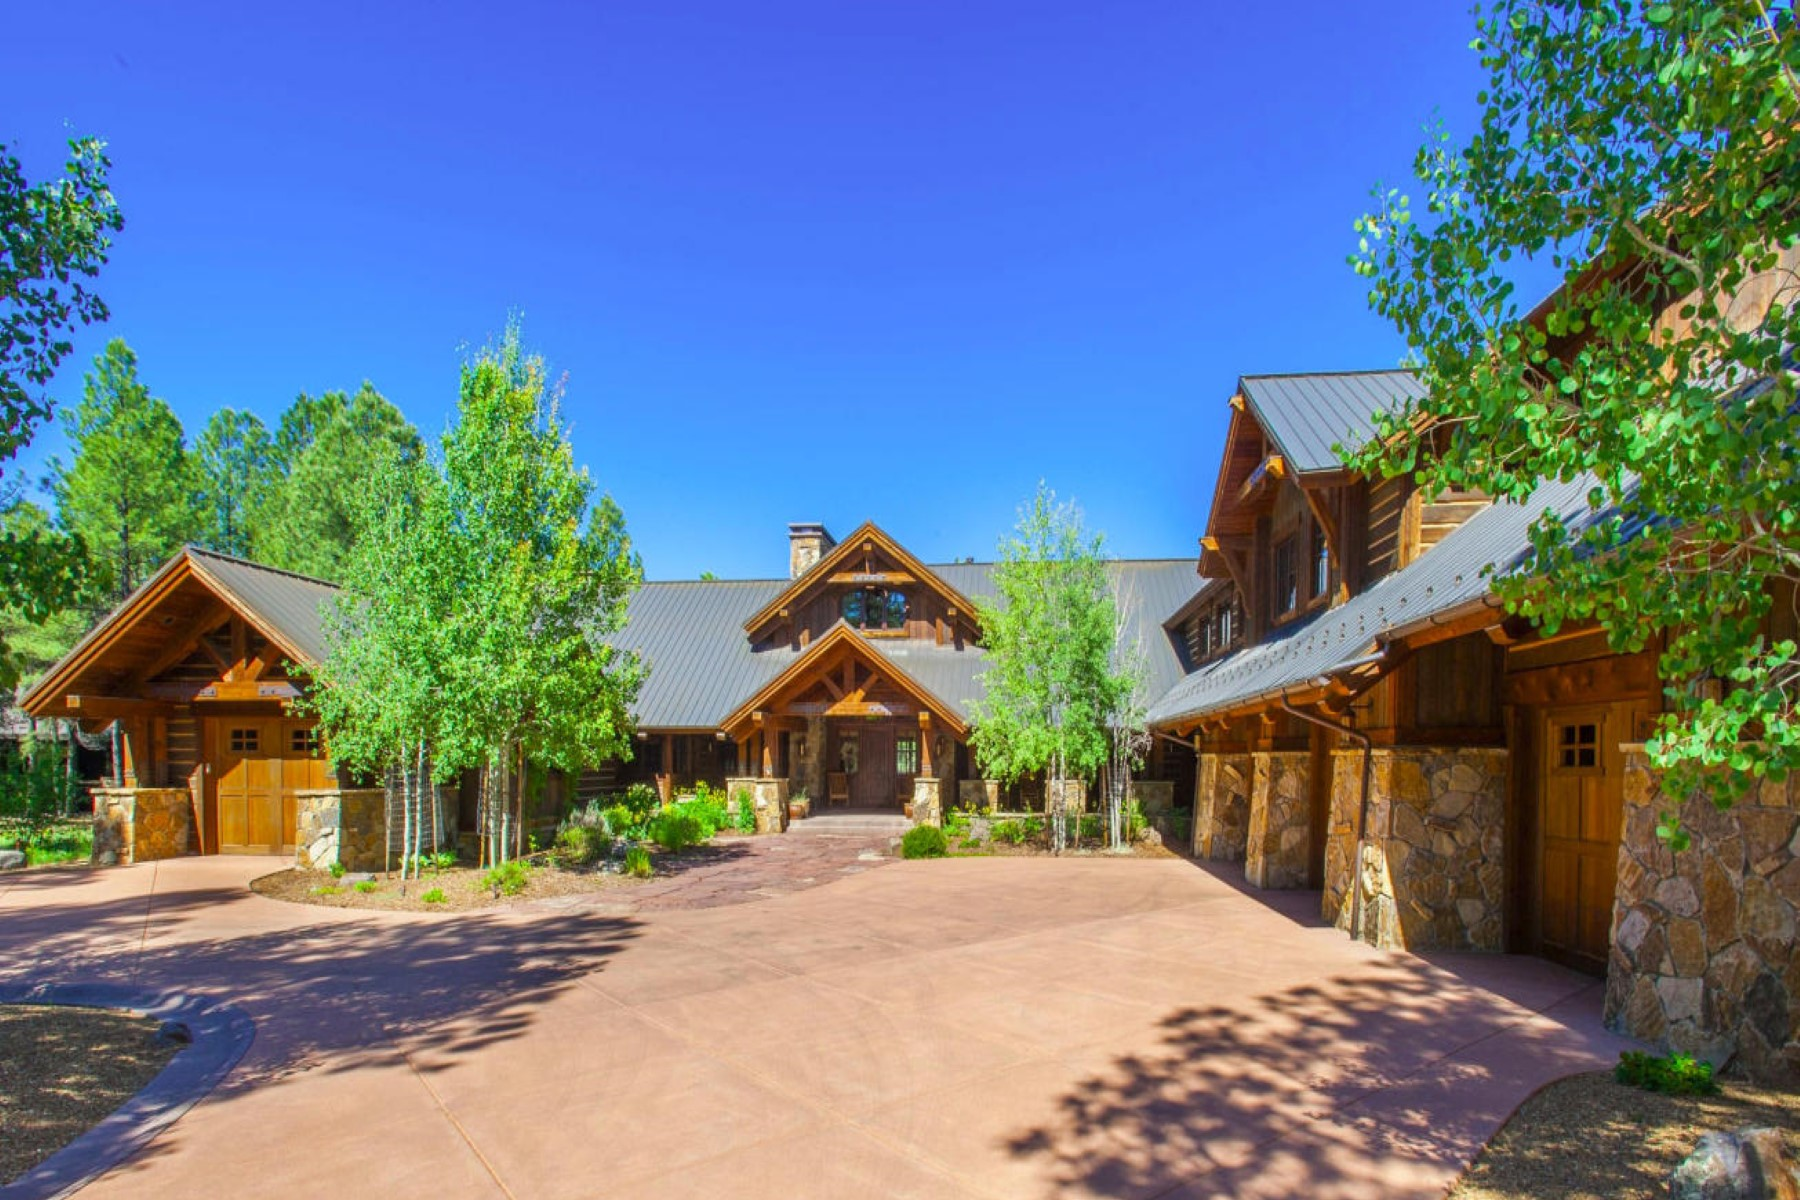 Single Family Home for Sale at Superior Elegance Defined in this Masterful Art of Construction. 2819 Fred Breen Flagstaff, Arizona 86005 United States